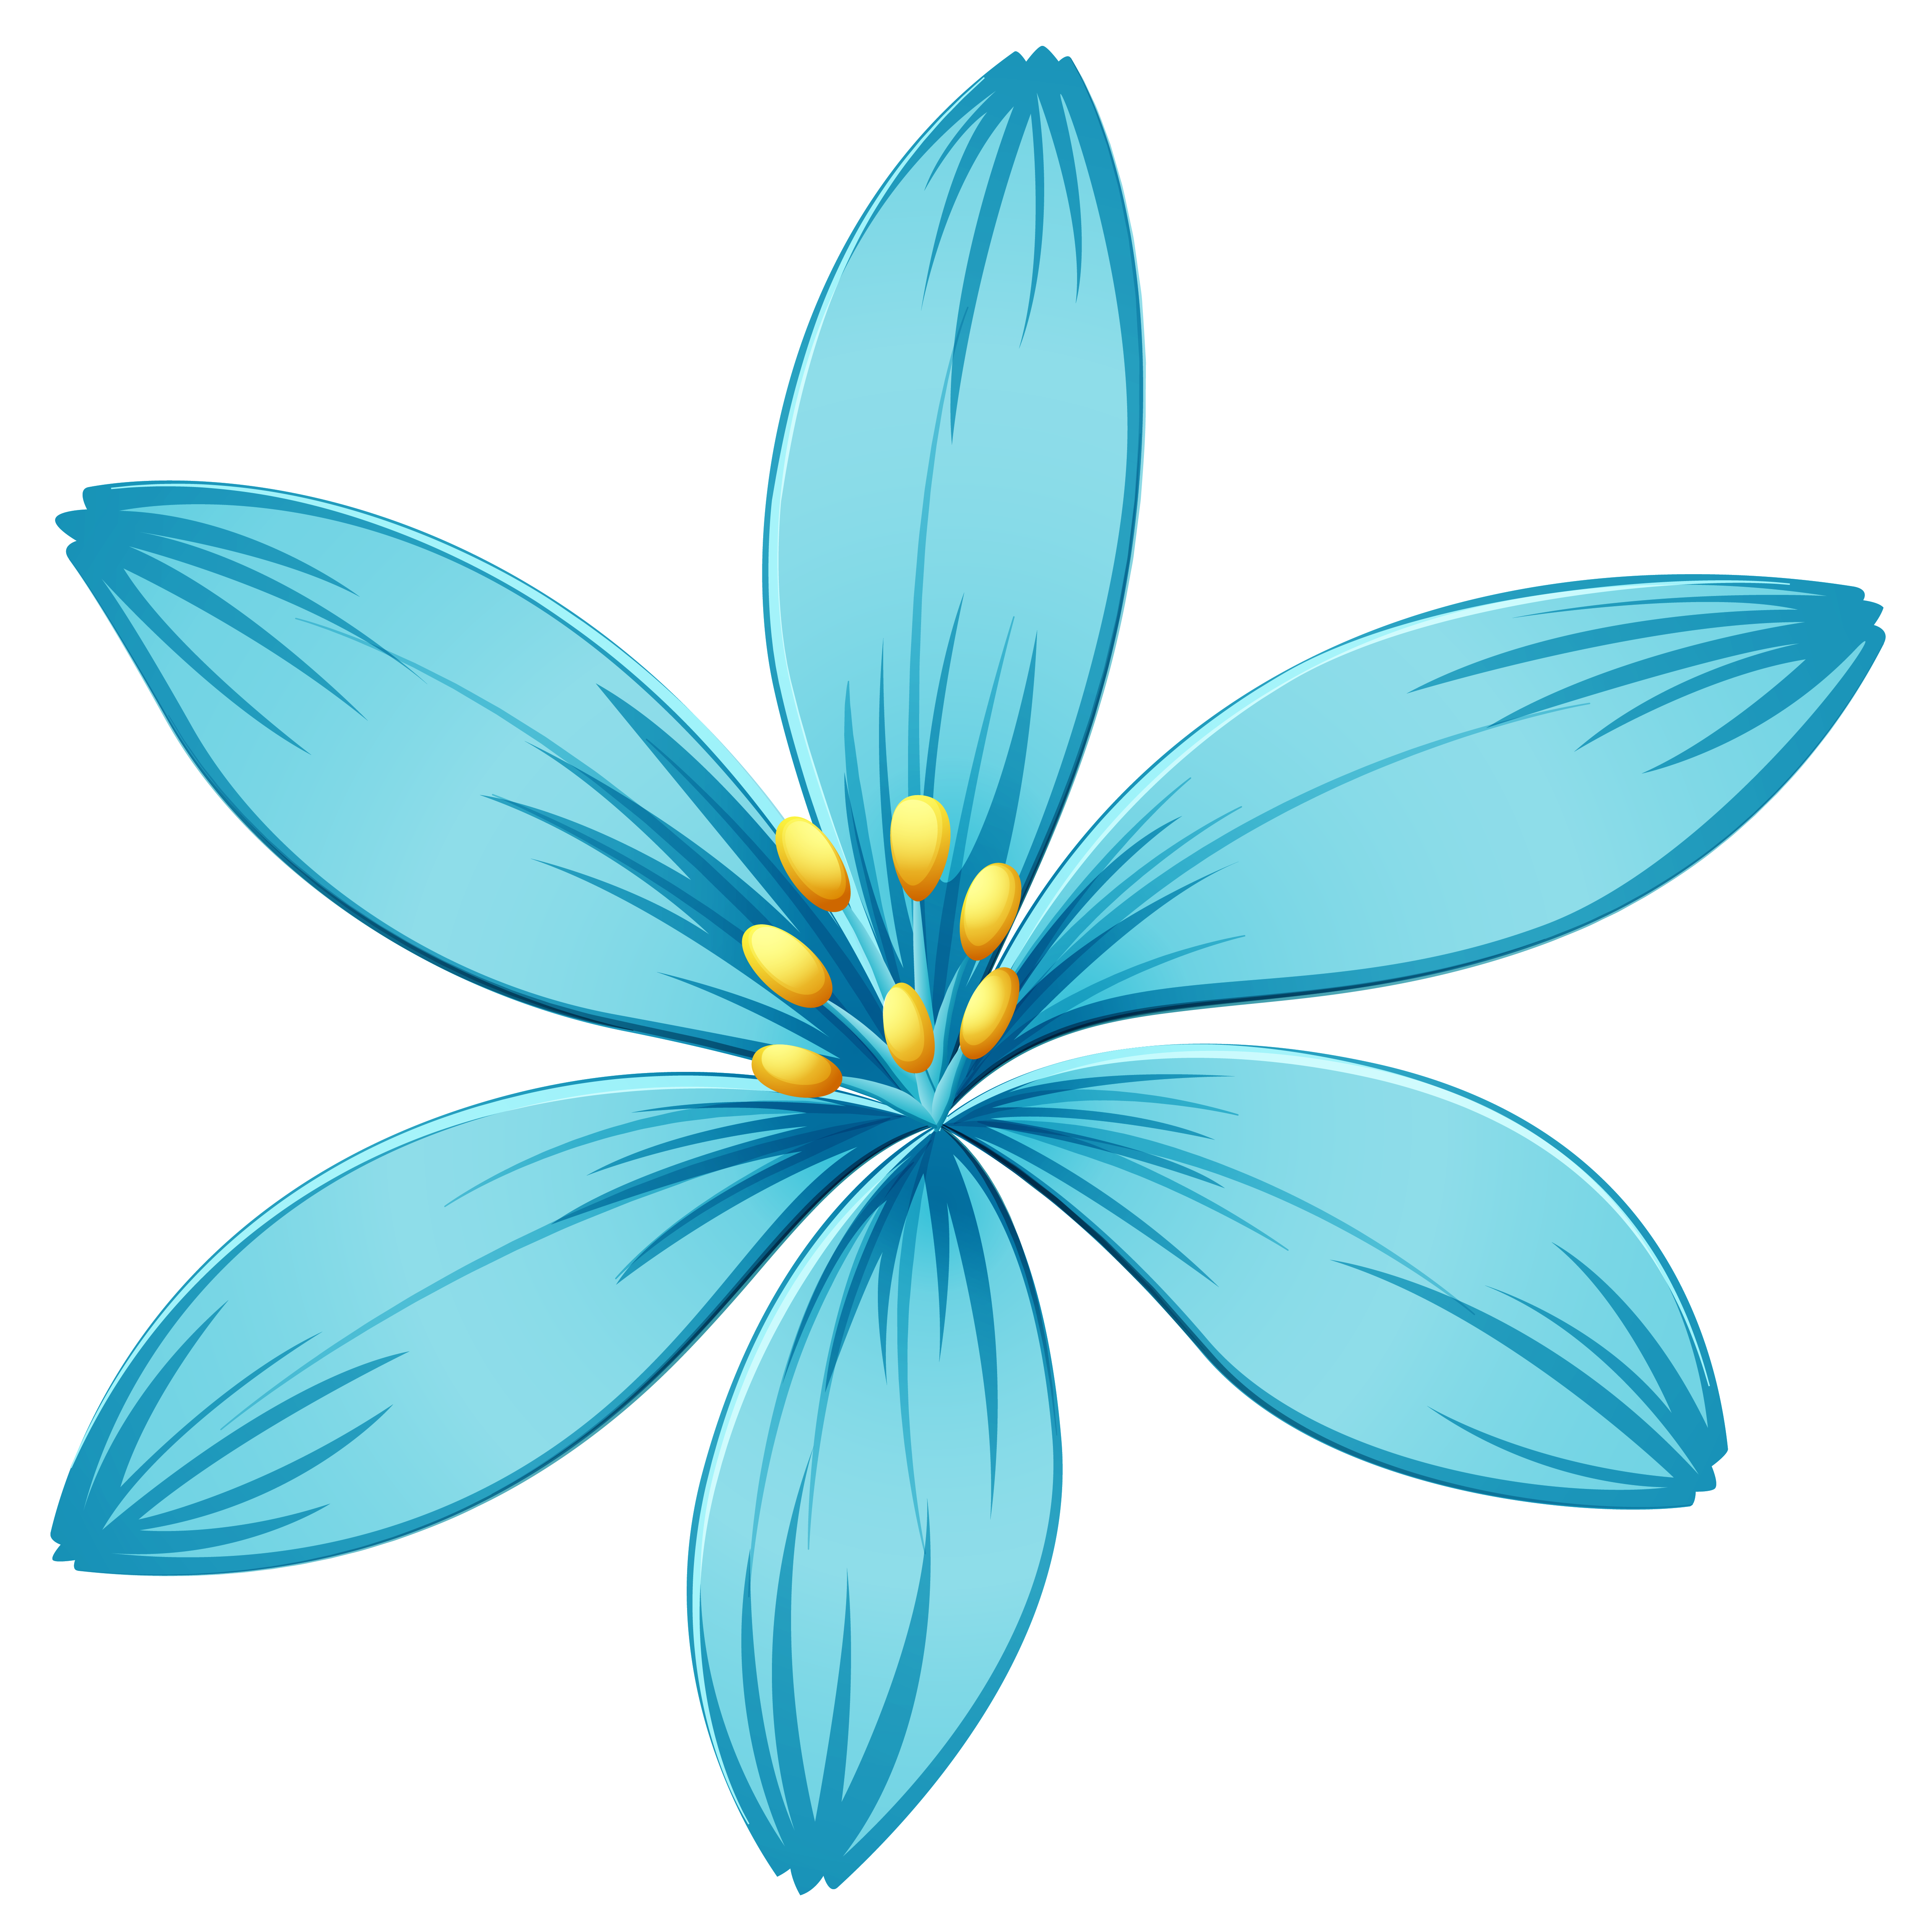 blue flowers png